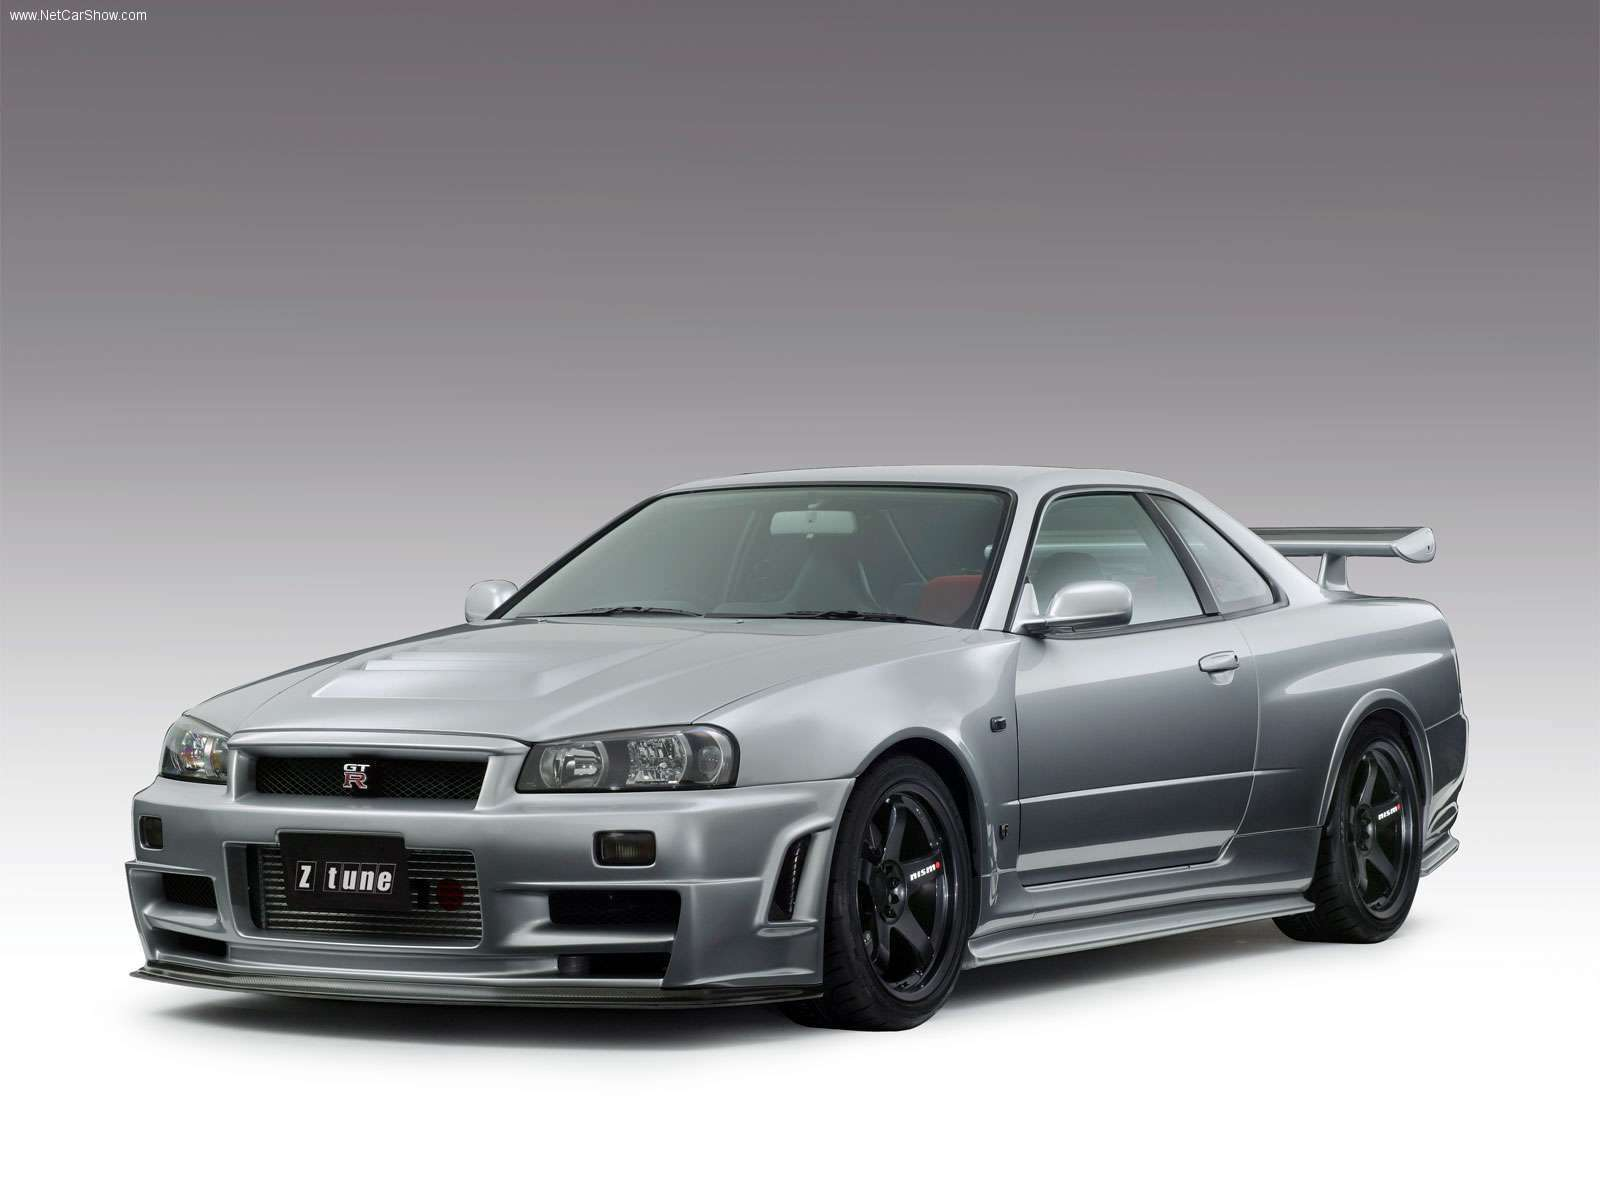 3dtuning of nissan skyline gt r coupe 2002 3dtuning unique nissan skyline gt r coupe 2002 vanachro Choice Image